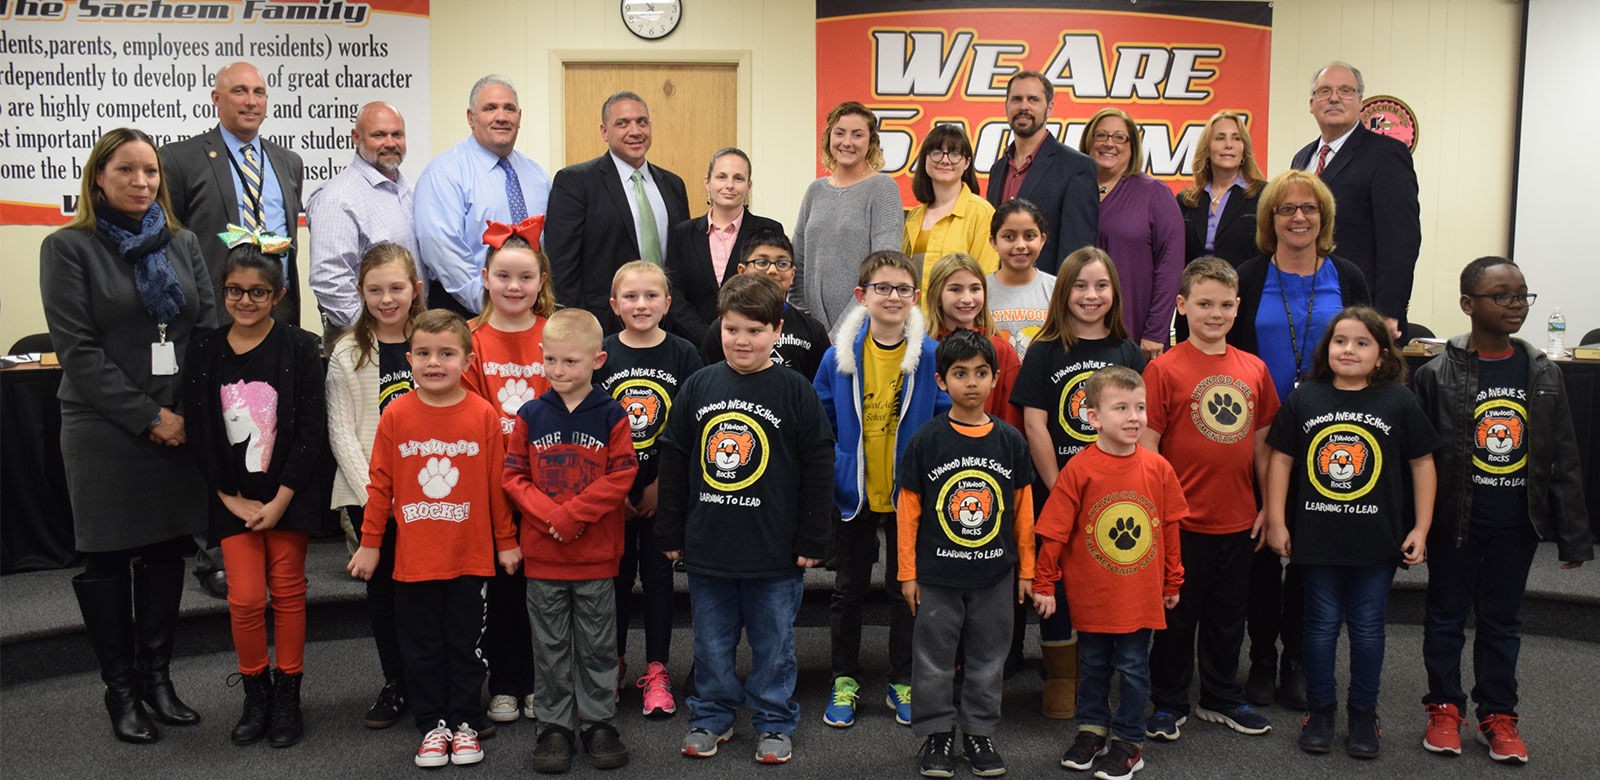 Board of Education Recognizes Continued Volunteerism